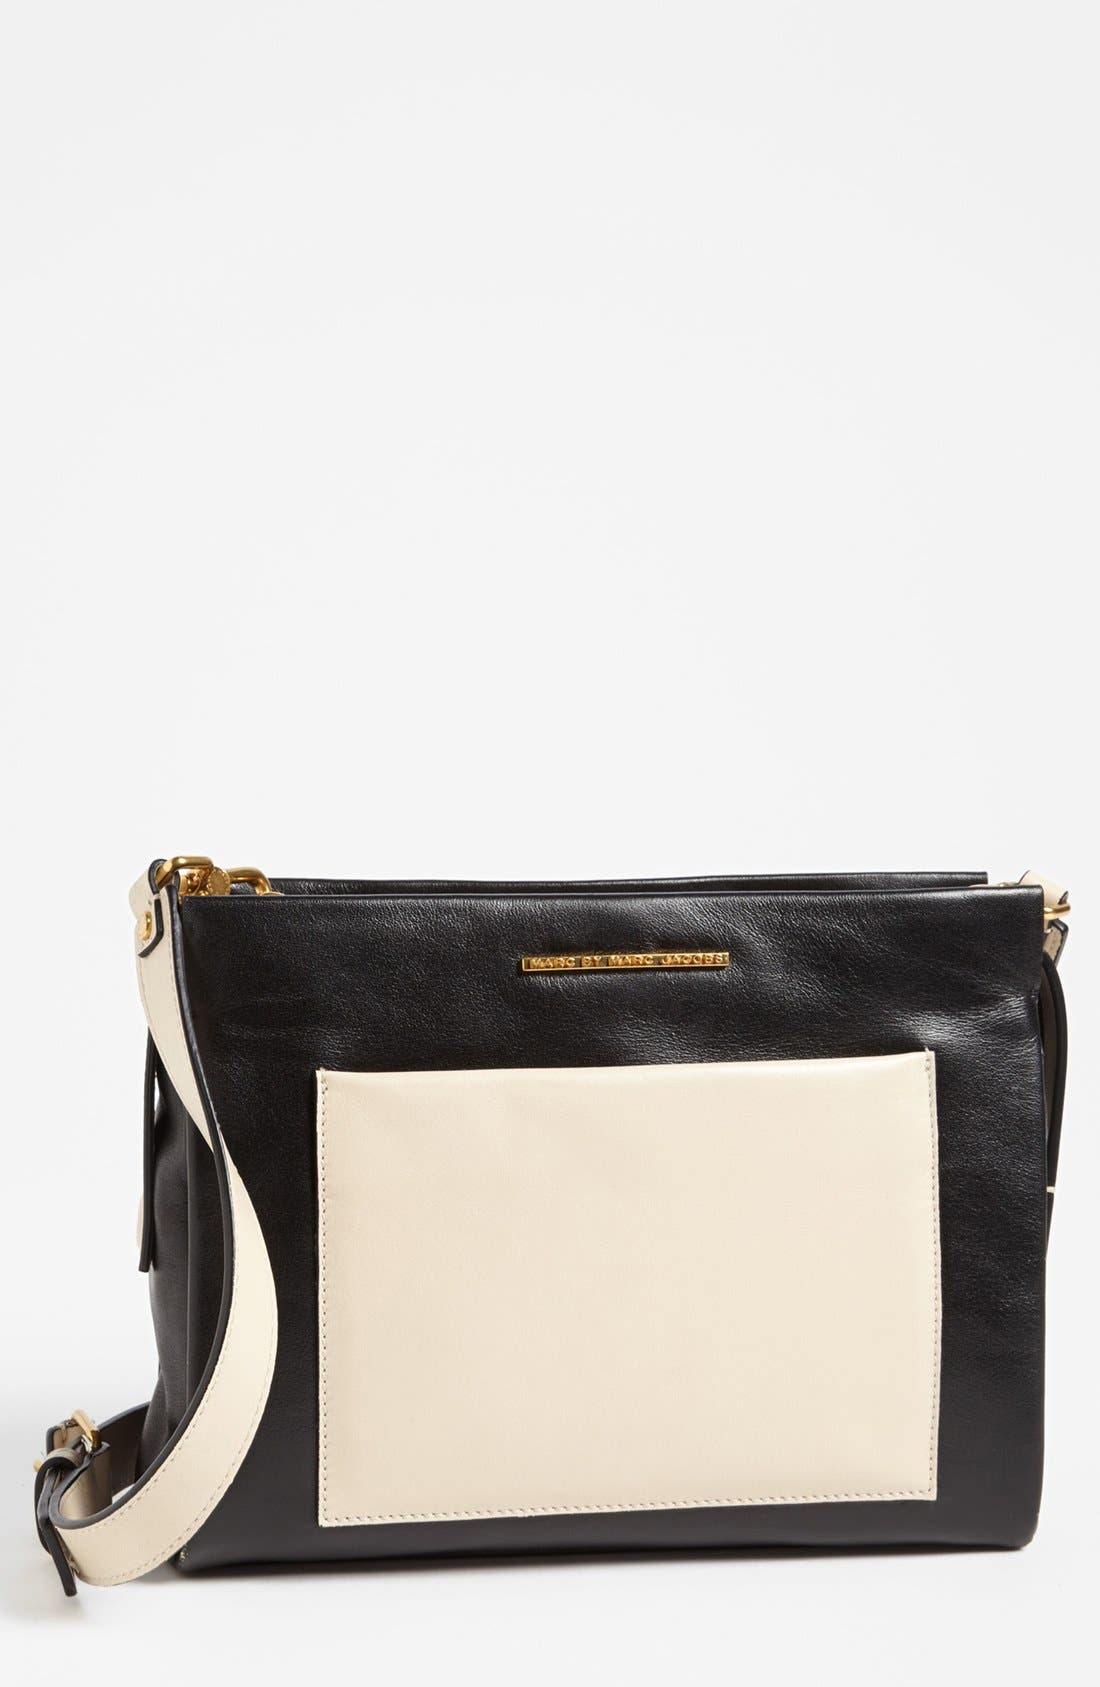 Alternate Image 1 Selected - MARC BY MARC JACOBS 'Fold Them' Leather Crossbody Bag